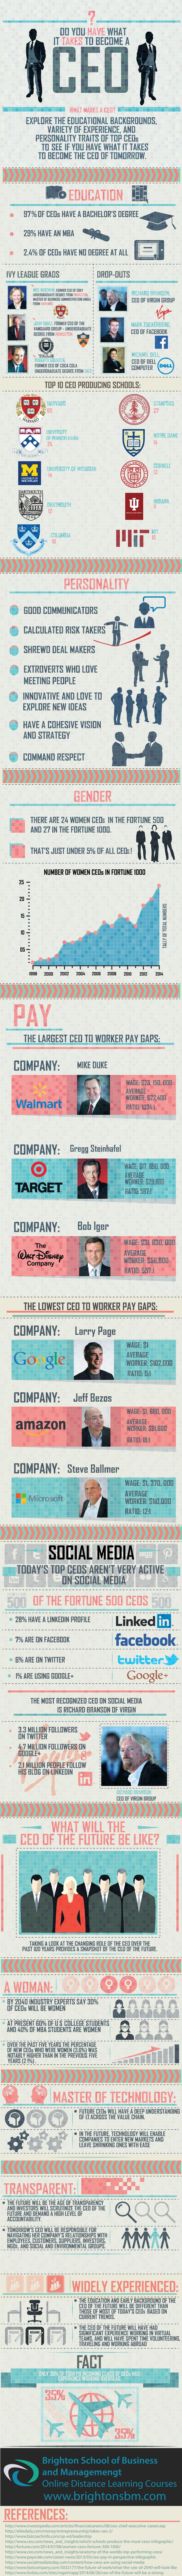 Do you have what it takes to be a CEO - BSBM Infographic